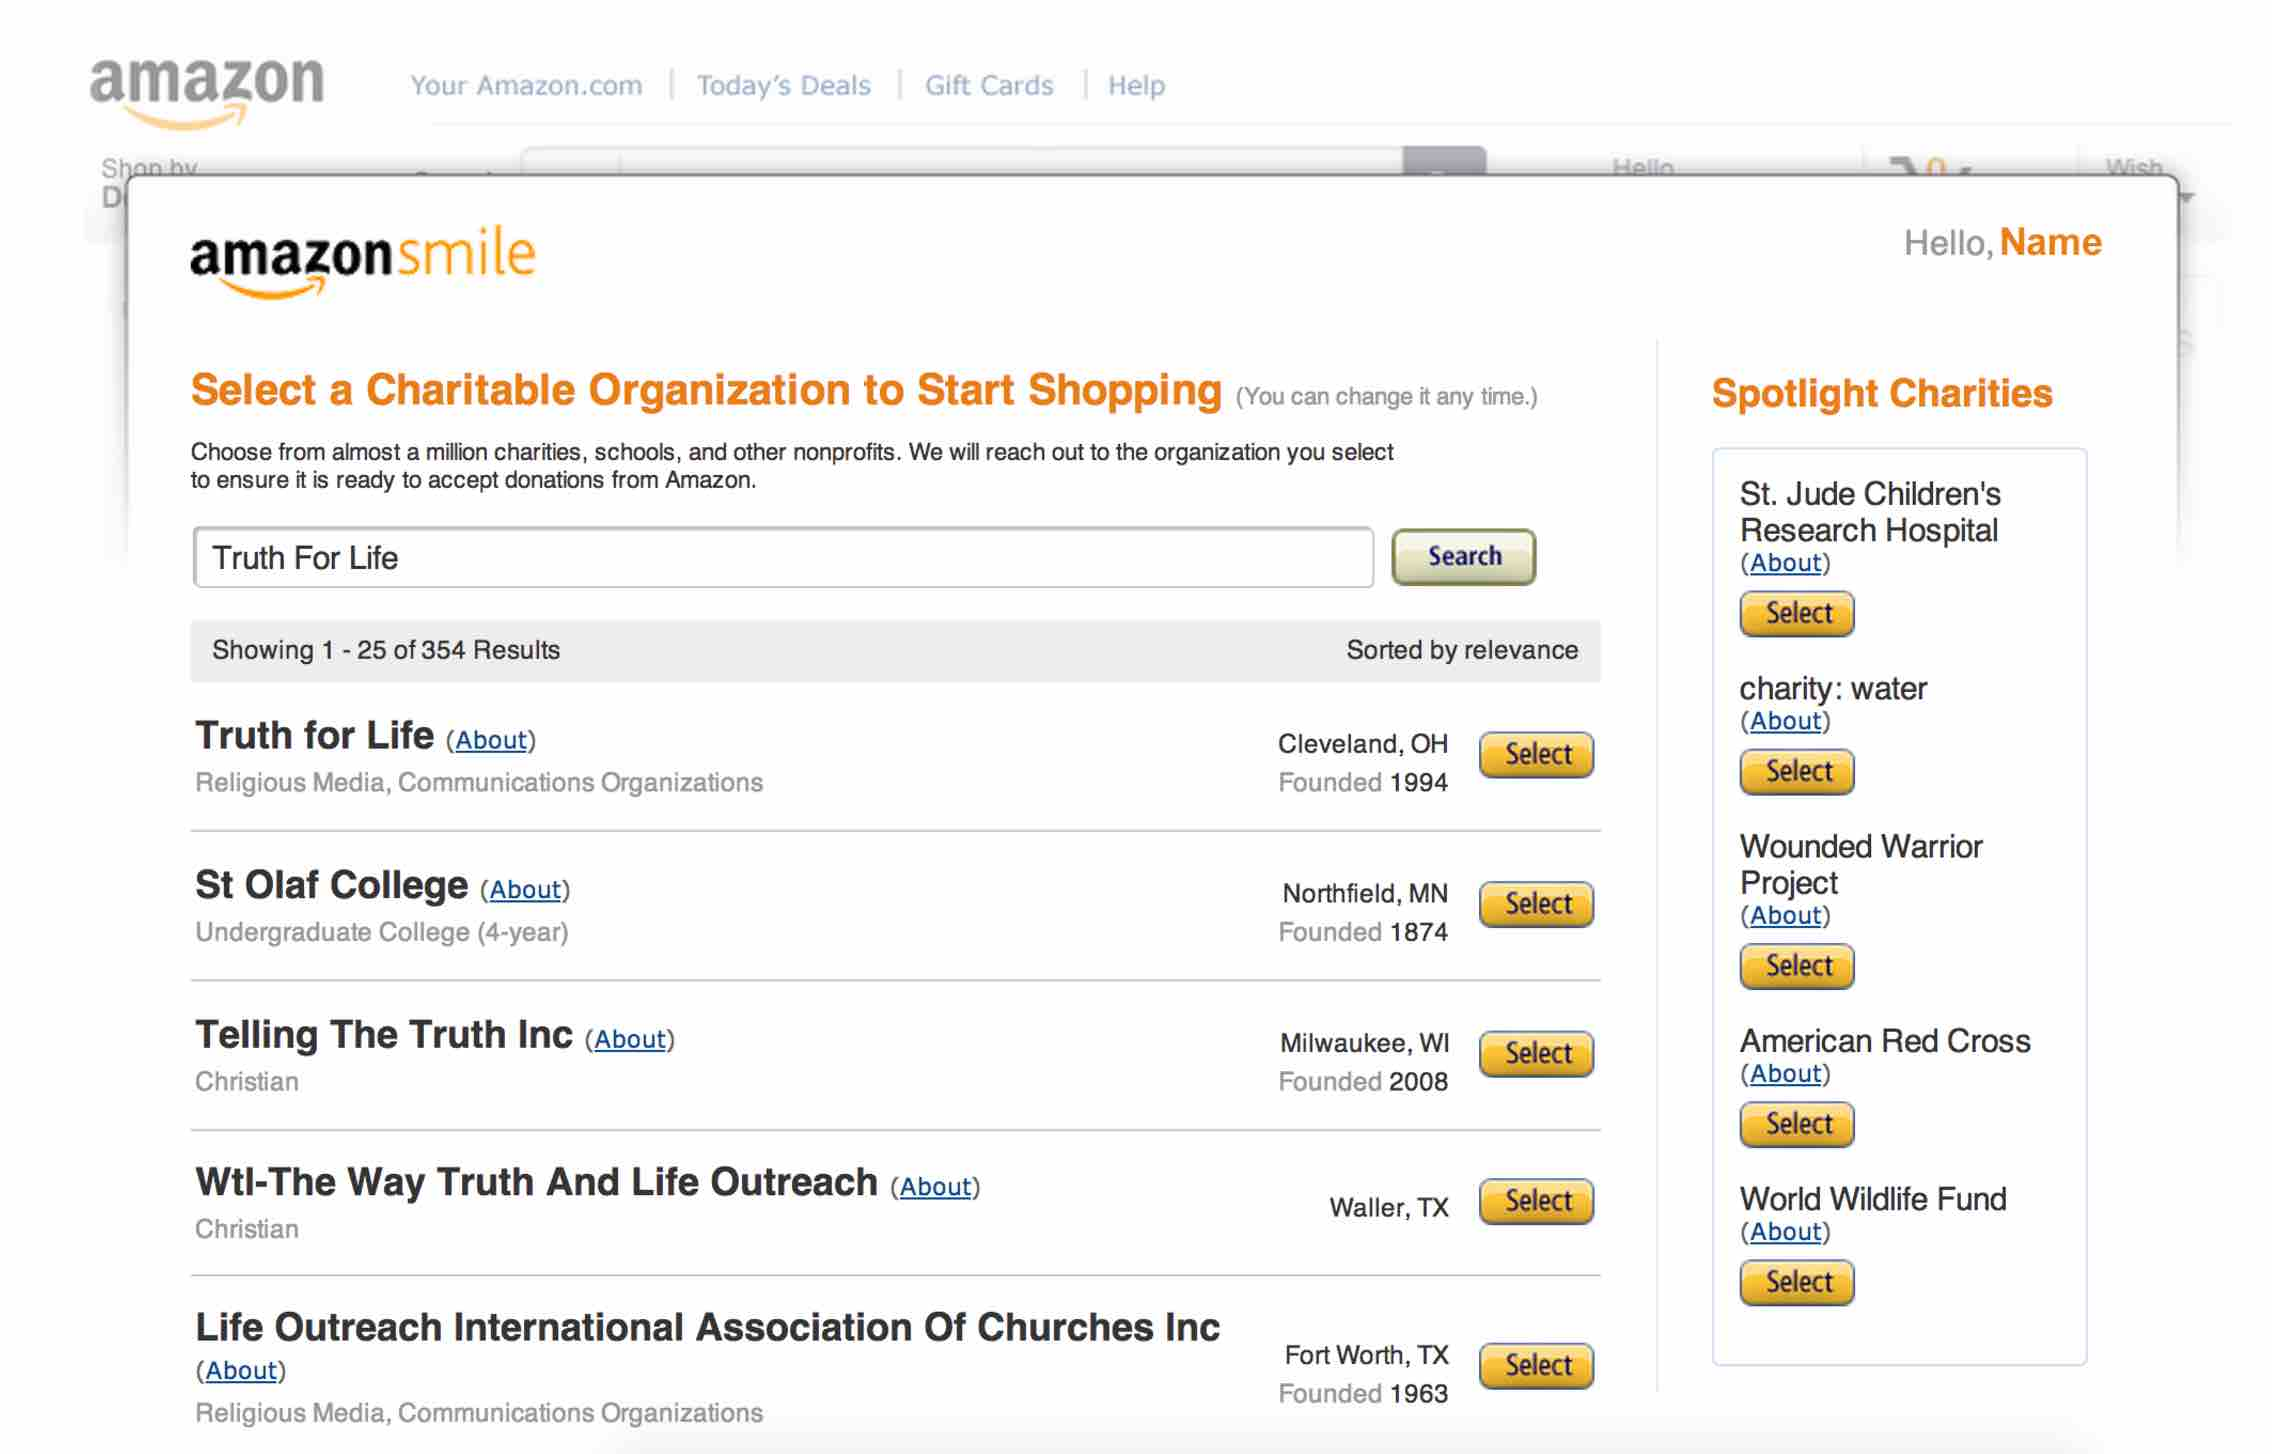 Amazon_Smile_step_3.jpg